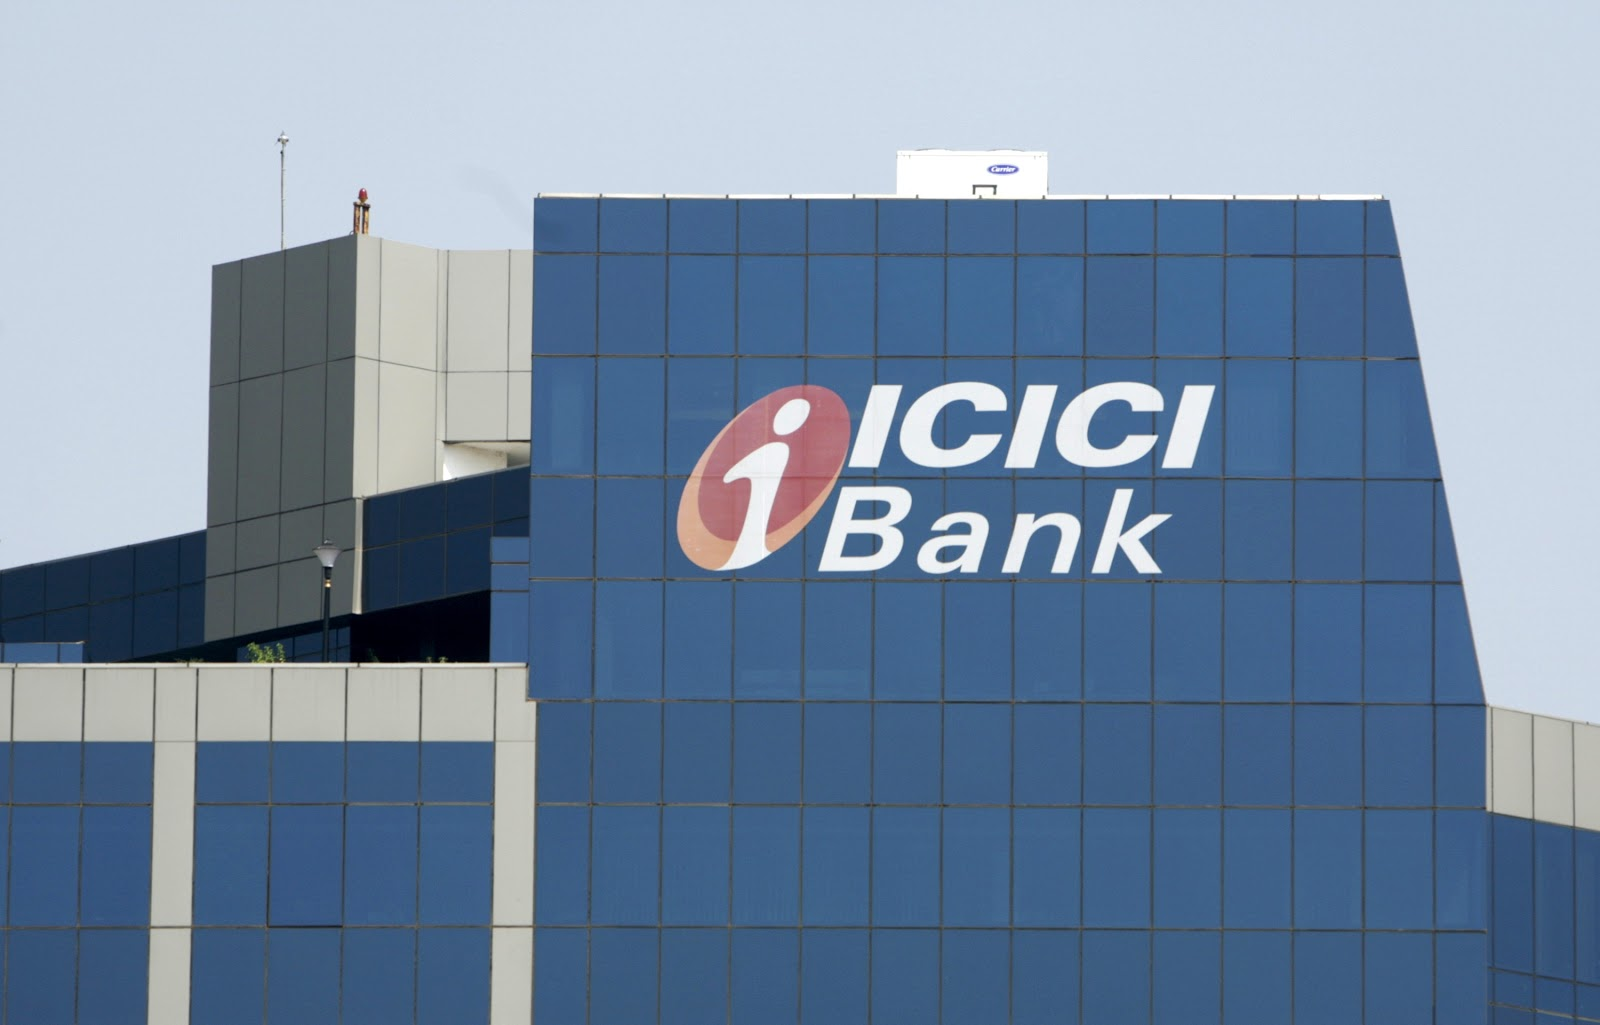 icici bank corporate office kolkata